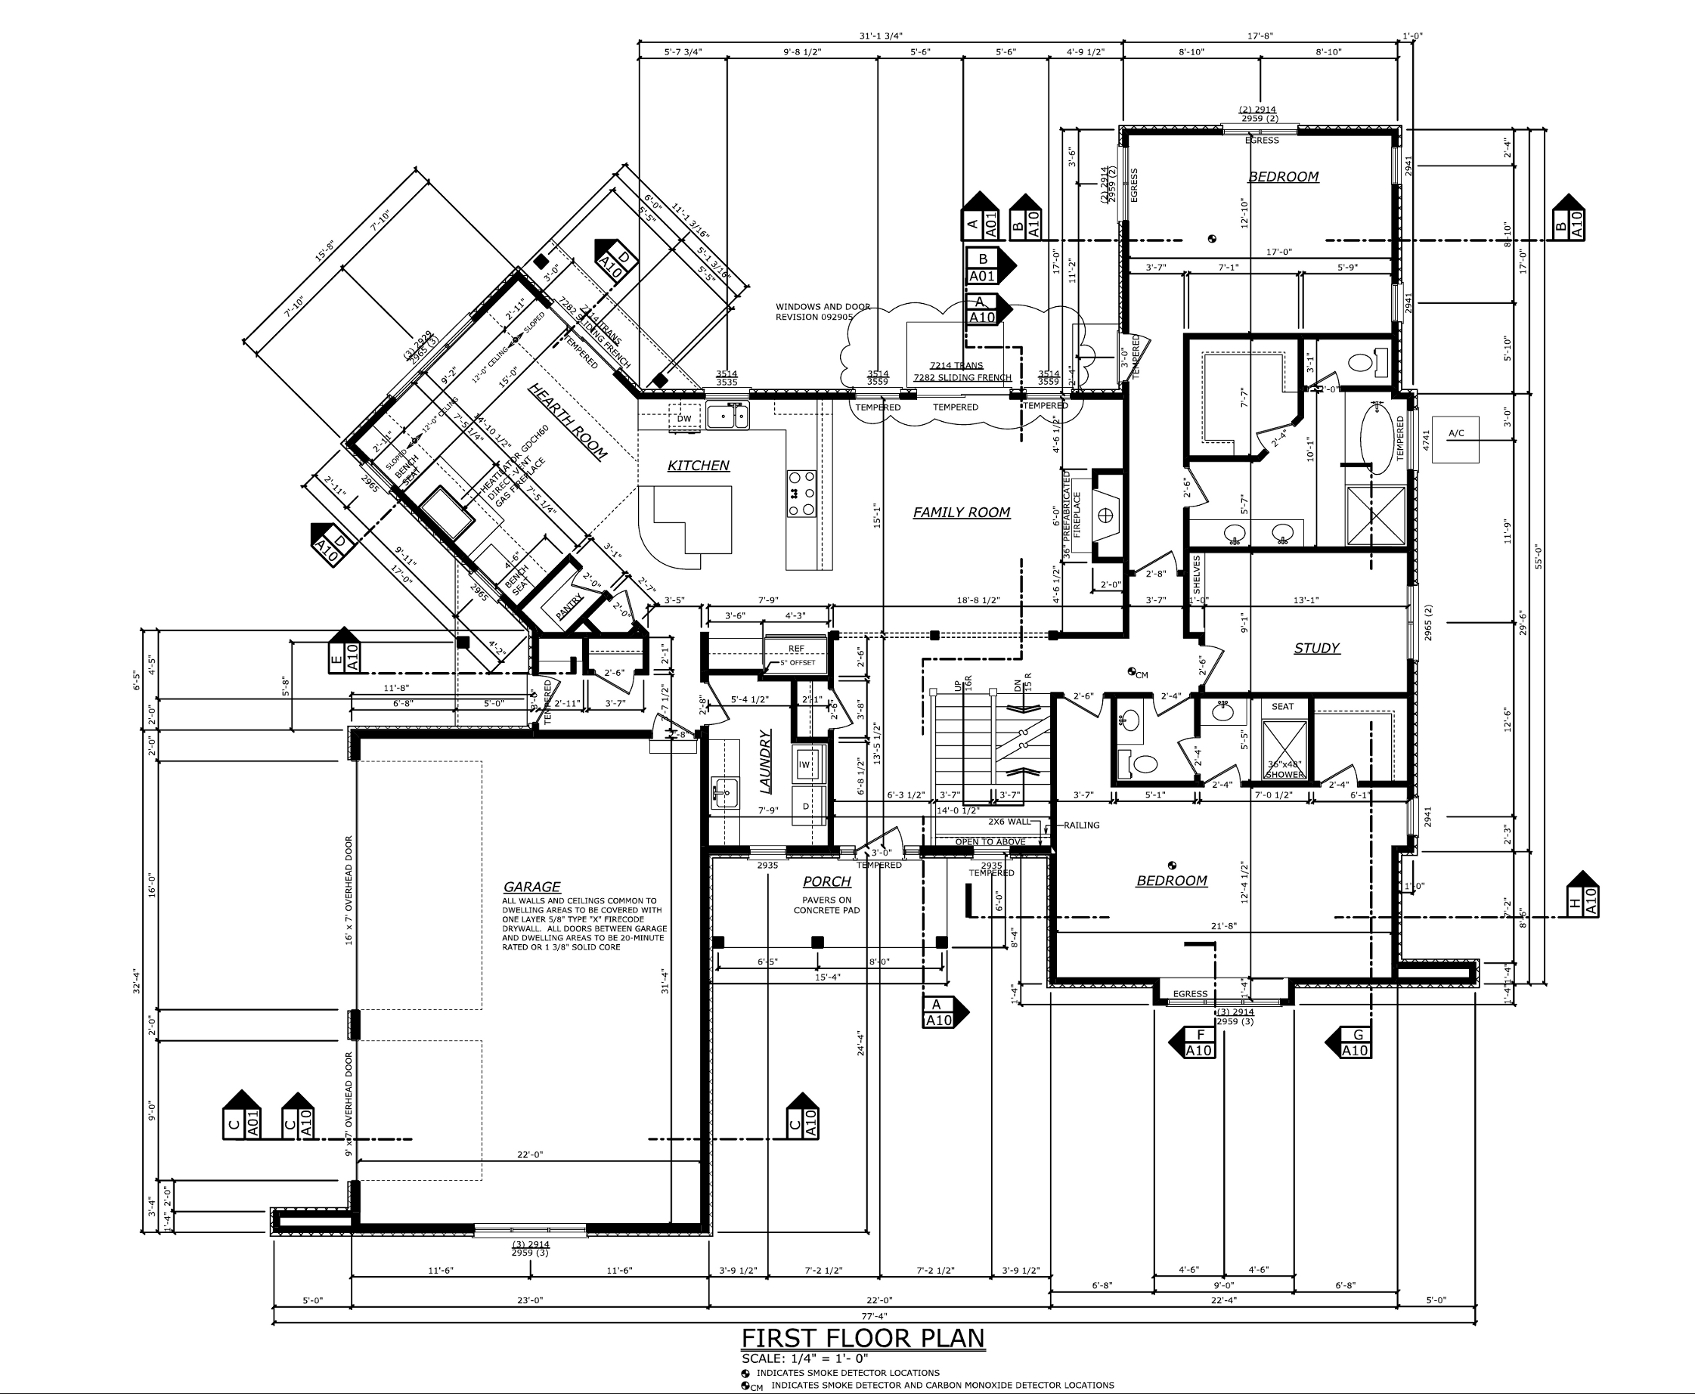 Residential drawings professional portfolio for House drawing plan layout